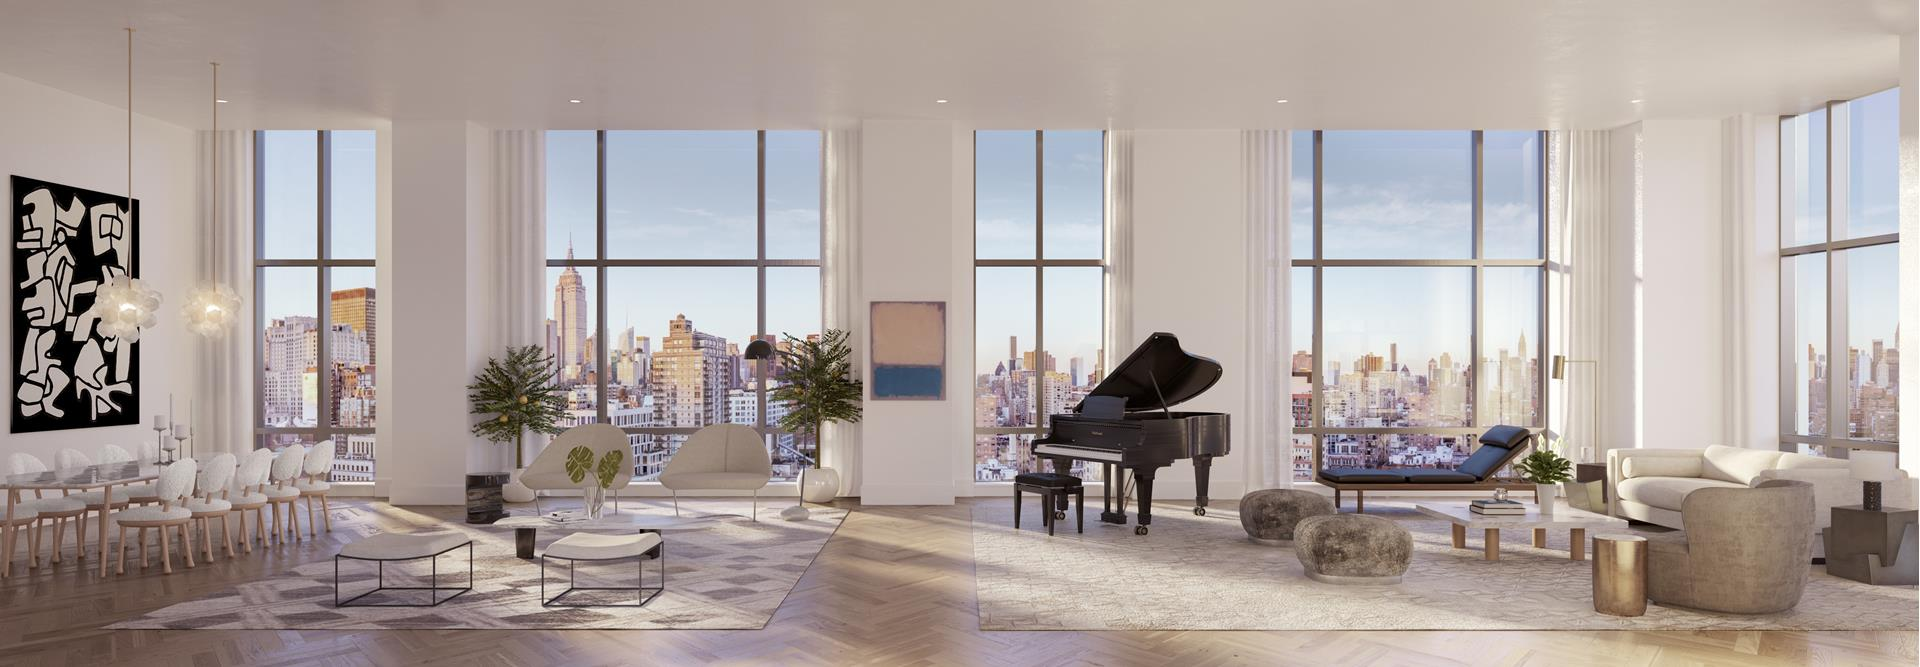 4% COMMISSION TO BUYERS BROKERS  Available for Immediate Occupancy.    Extraordinary Space and Soaring Views - One of Manhattans Premier Residence    Newly released, Residence 17C is a spectacular 3,700+ square foot, high-floor residence with dramatic 12 foot ceilings and 180-degree panoramic views. The entry gallery leads to an extraordinary great room with 56 feet of frontage and breathtaking views of   Manhattans most recognizable landmarks including the Empire State Building, Chrysler Building, the Madison Square Clock Tower, and New York Life Building.    Kitchen finishes are contemporary but warm, featuring custom-designed cabinetry by Italy-based Canova with top-of-the-line Sub-Zero and Wolf appliances, rich Calacatta marble and elegant Lefroy Brooks fixtures.    The home also features an immense master suite, with Italian marble baths, a glass-enclosed shower, a separate Duravit soaking tub and radiant heated floors. There are two additional bedrooms, each with en-suite bathrooms, and a separate powder room for guests.    Impeccable fittings and materials include Italian marble, solid hardwood doors with Valli & Valli hardware, Lefroy Brooks fixtures and rift and quartered white oak floors throughout.    Modern touches include multi-zone HVAC system for year-round temperature control, pre-wired electrical at all windows for automated shades and recessed LED lighting. A separate utility closet houses an LG washer and externally vented dryer.    This voluminous three bedroom easily lends itself to a four bedroom plan. Available for Immediate Occupancy.    215 East 19th Street at Gramercy Square is a private, full-service condominium that offers a full-time resident manager, 24-hour doorman, concierge and valet with on-site parking.    Gramercy Square includes 20,000-square-feet of tranquil, private green spaces designed by celebrated architect M. Paul Friedberg Partners. Landscape envelops the residences both on the ground and in the air, from multi-tiered cou